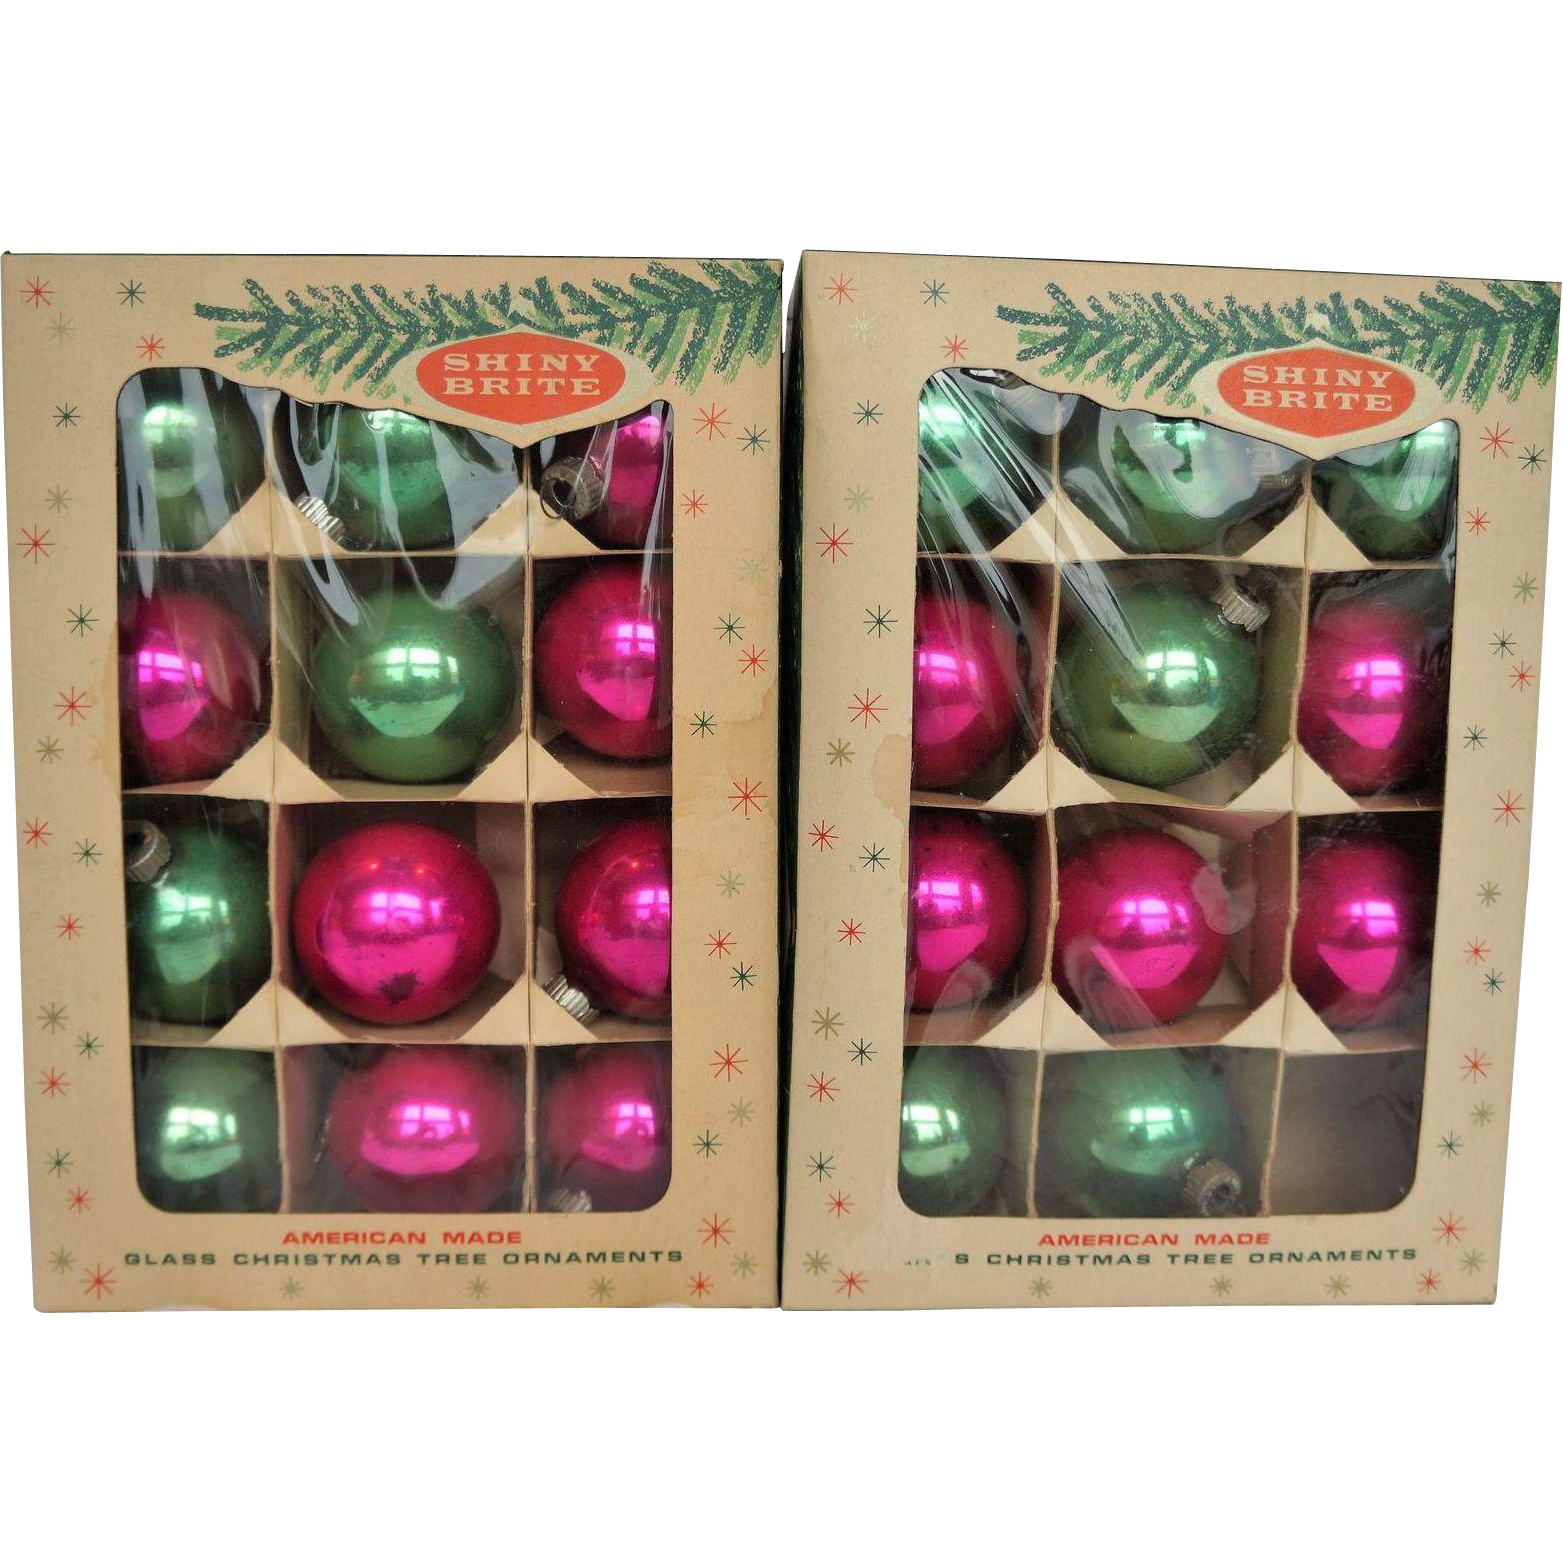 Shiny Brite 2 Boxes 23 Pink Green Mixed Christmas Ornaments 2 IN Balls